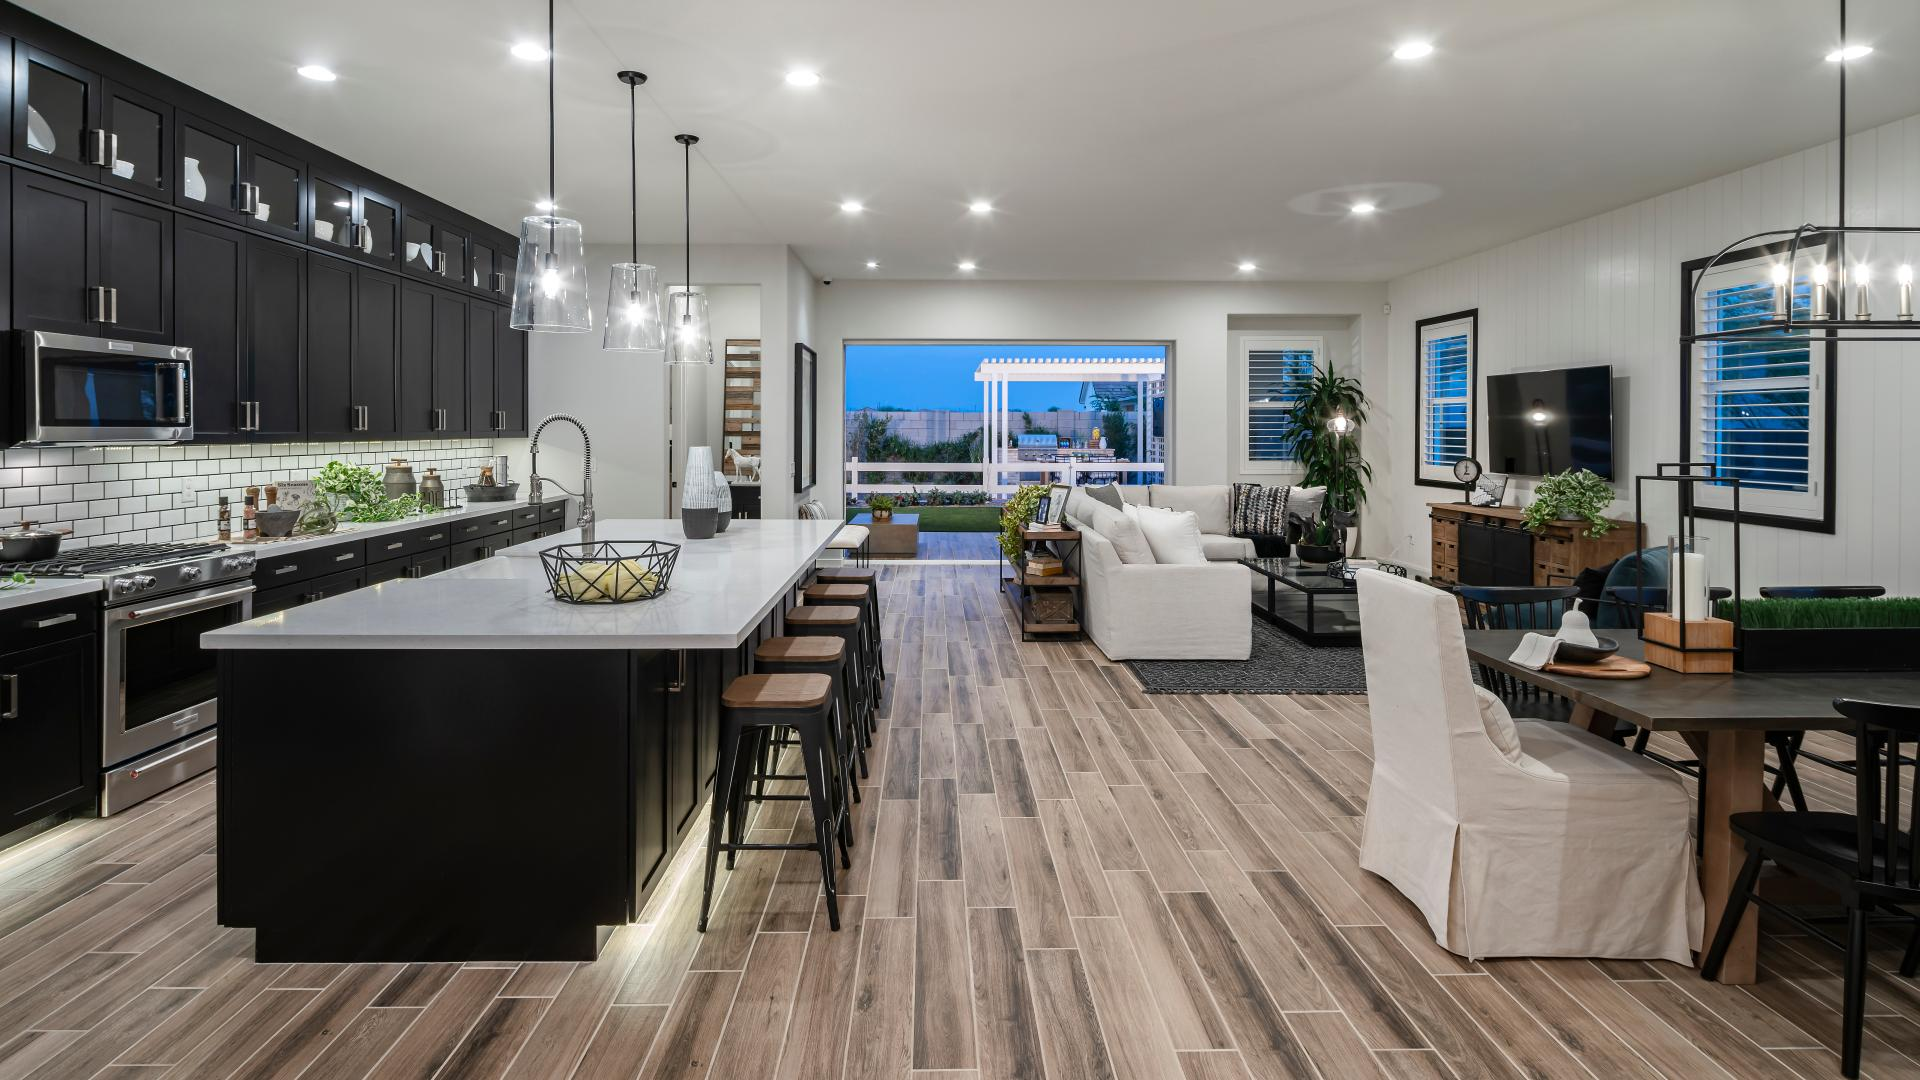 Beautiful kitchens with views of the great room and outdoor living space beyond